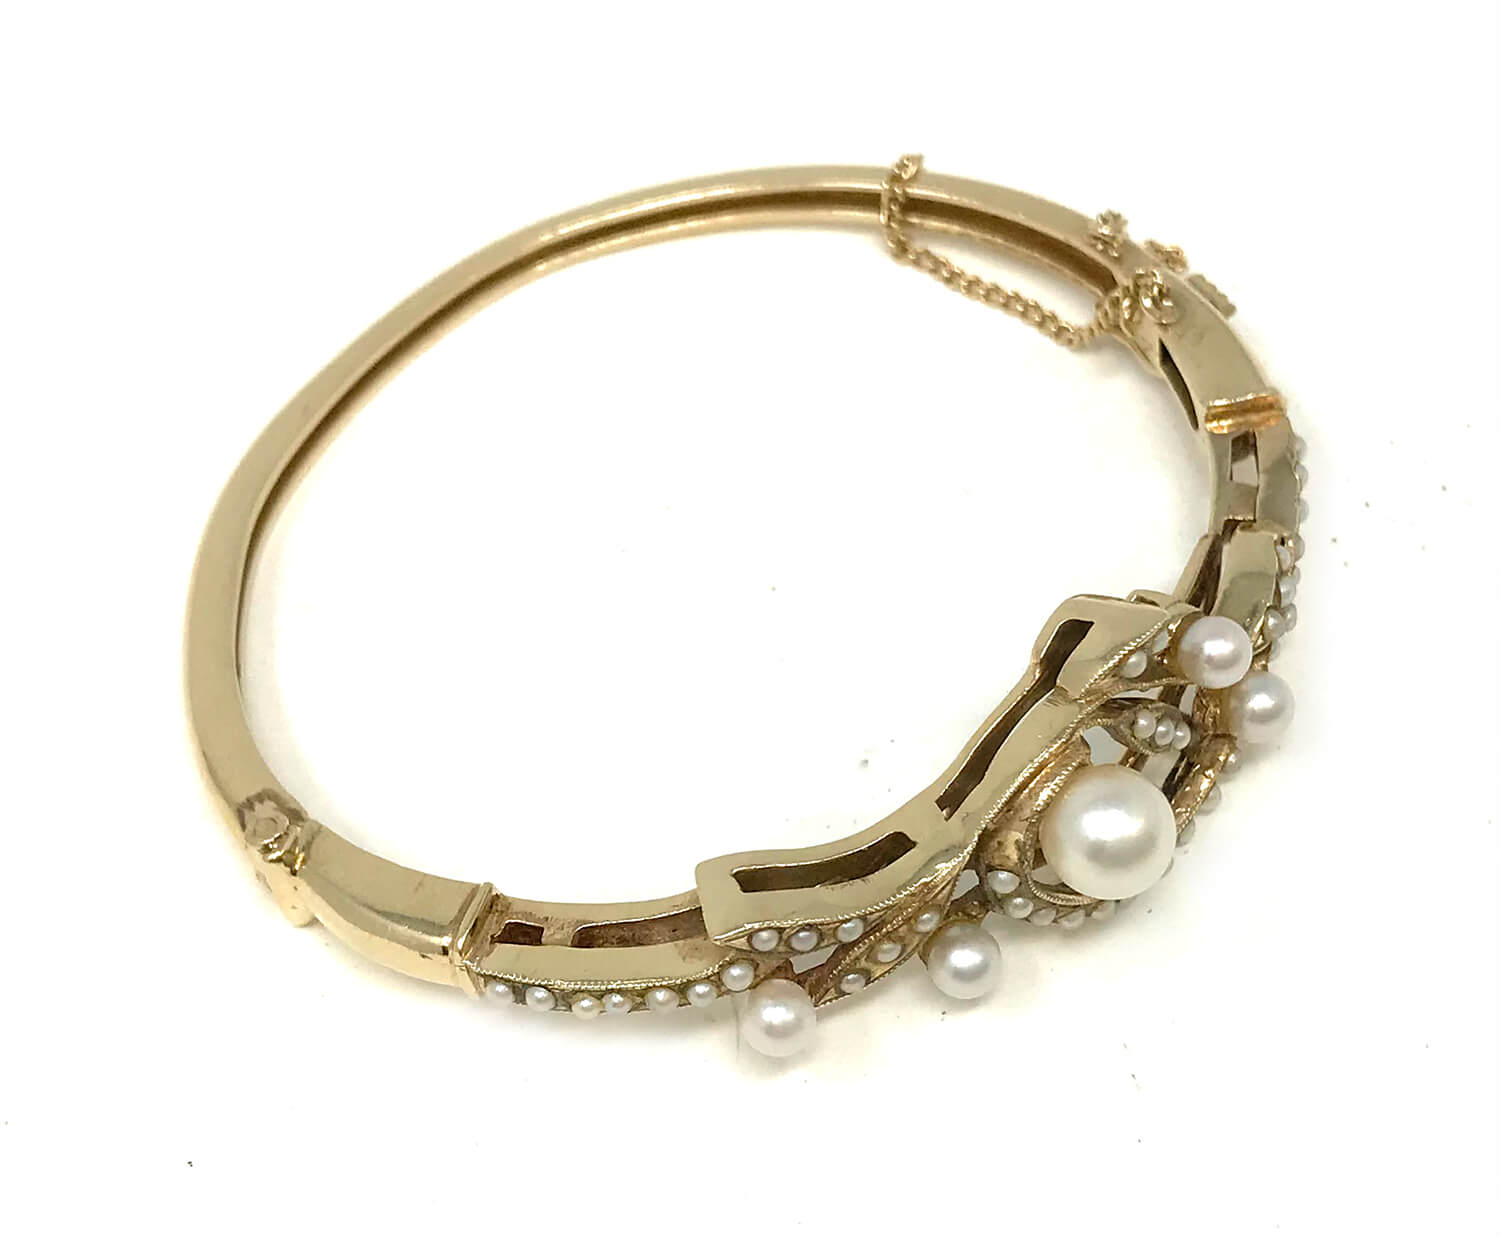 Vintage 14k Gold Bracelet with Pearls